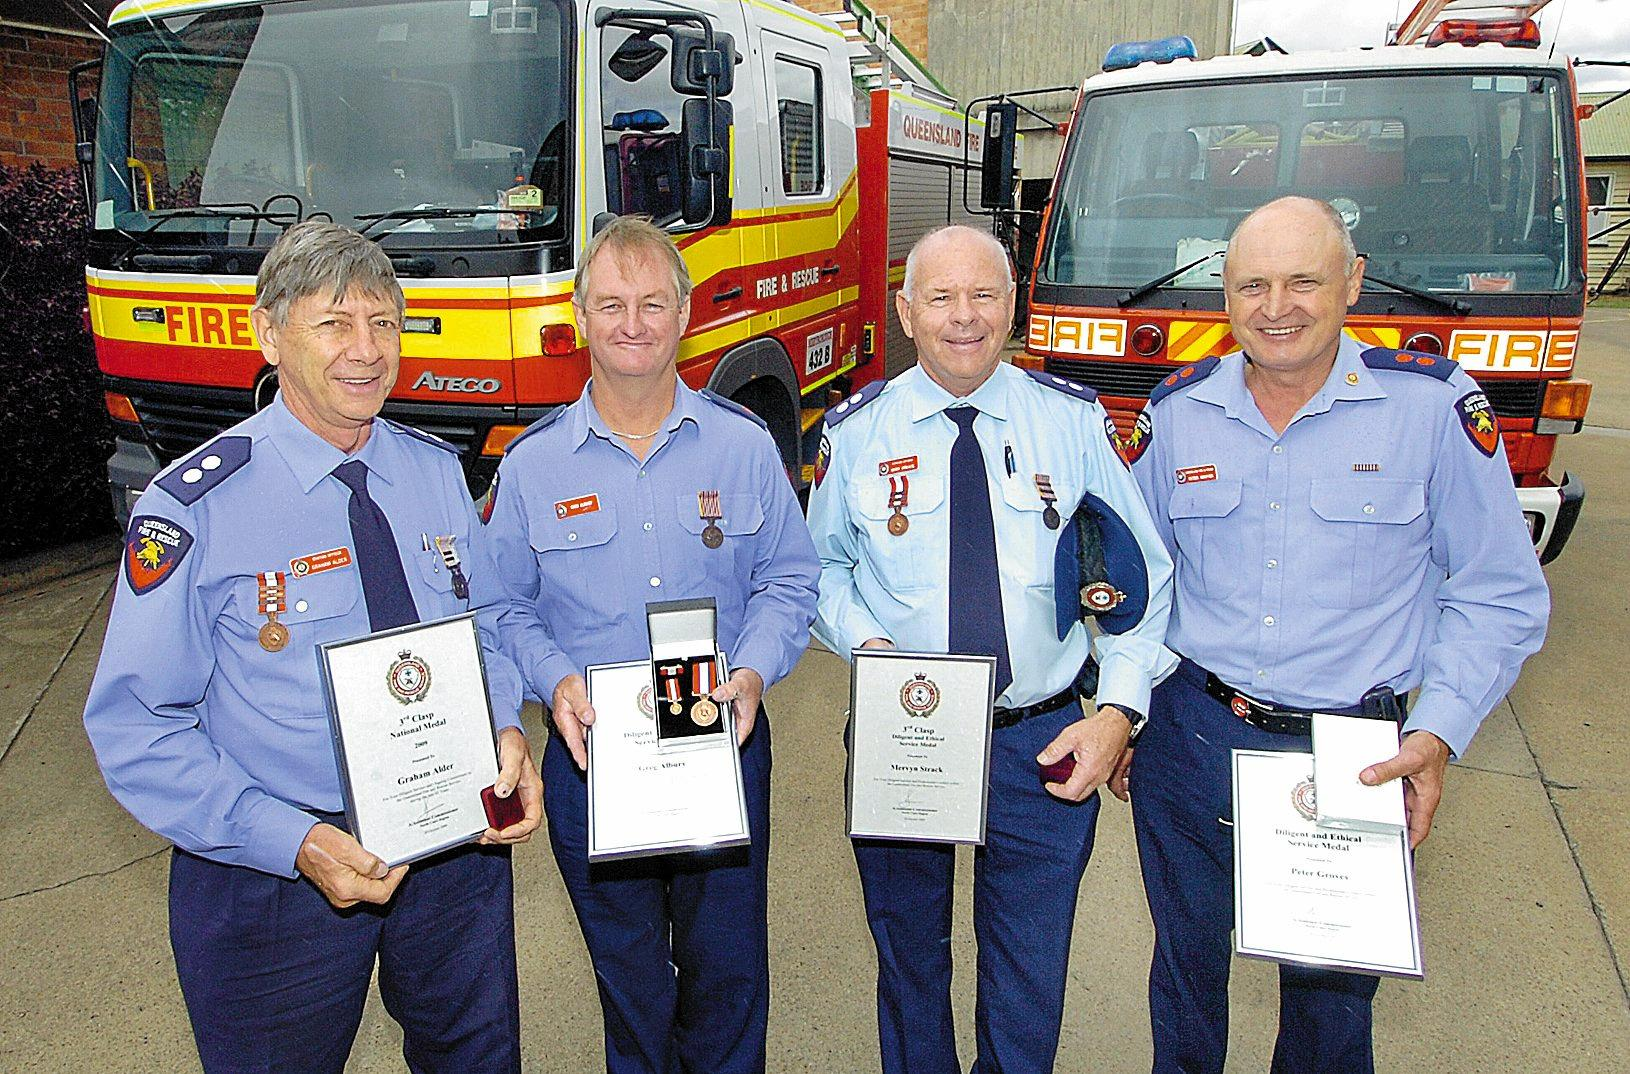 Gympie firefighters awards (L) Graham Alder, Greg Albury, Merv Strack and Peter Groves.Photo: ALISTAIR BRIGHTMAN 09h2265c